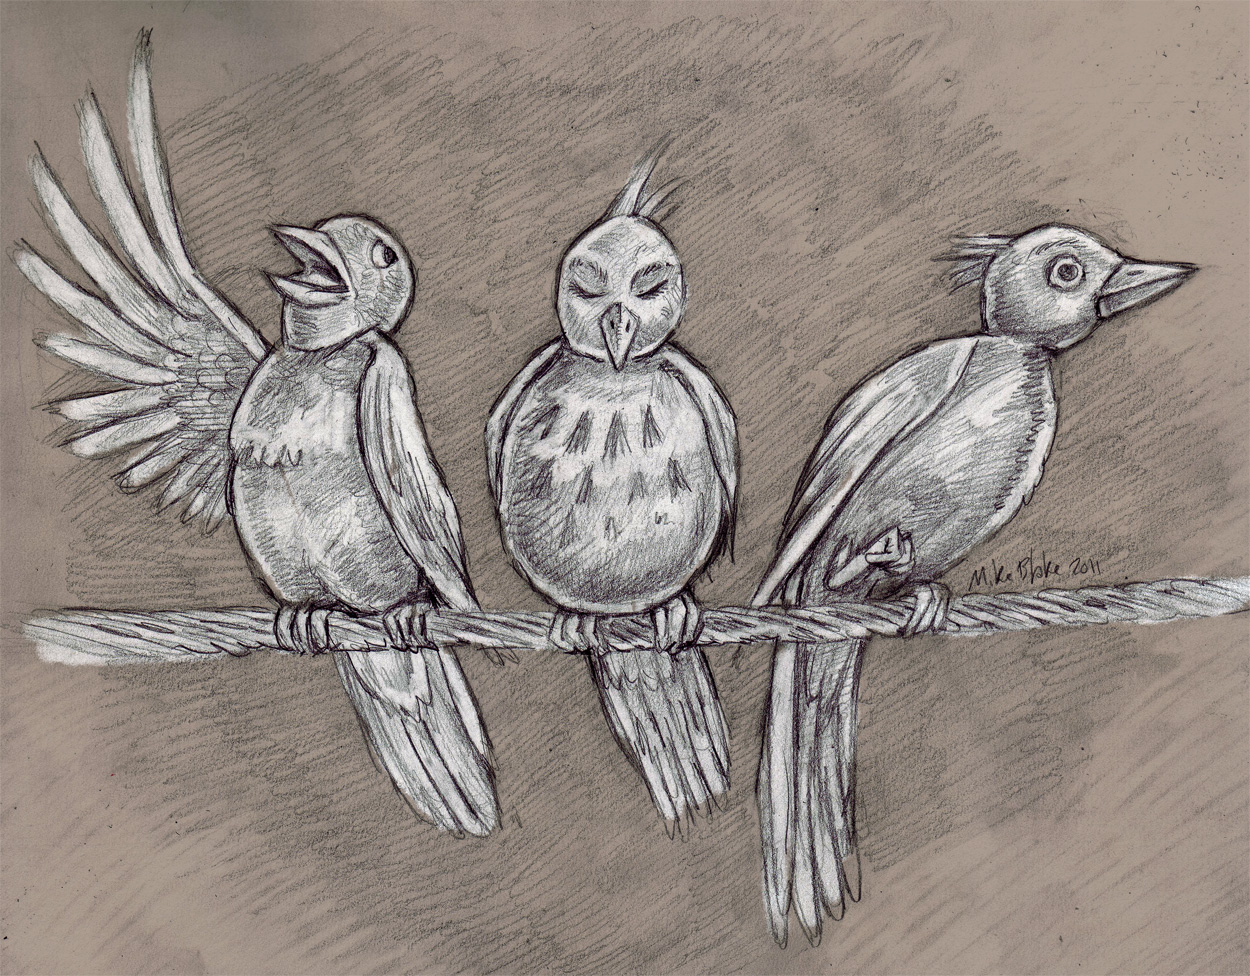 1250x976 Sketch Illustration 3 Birds With One Stone